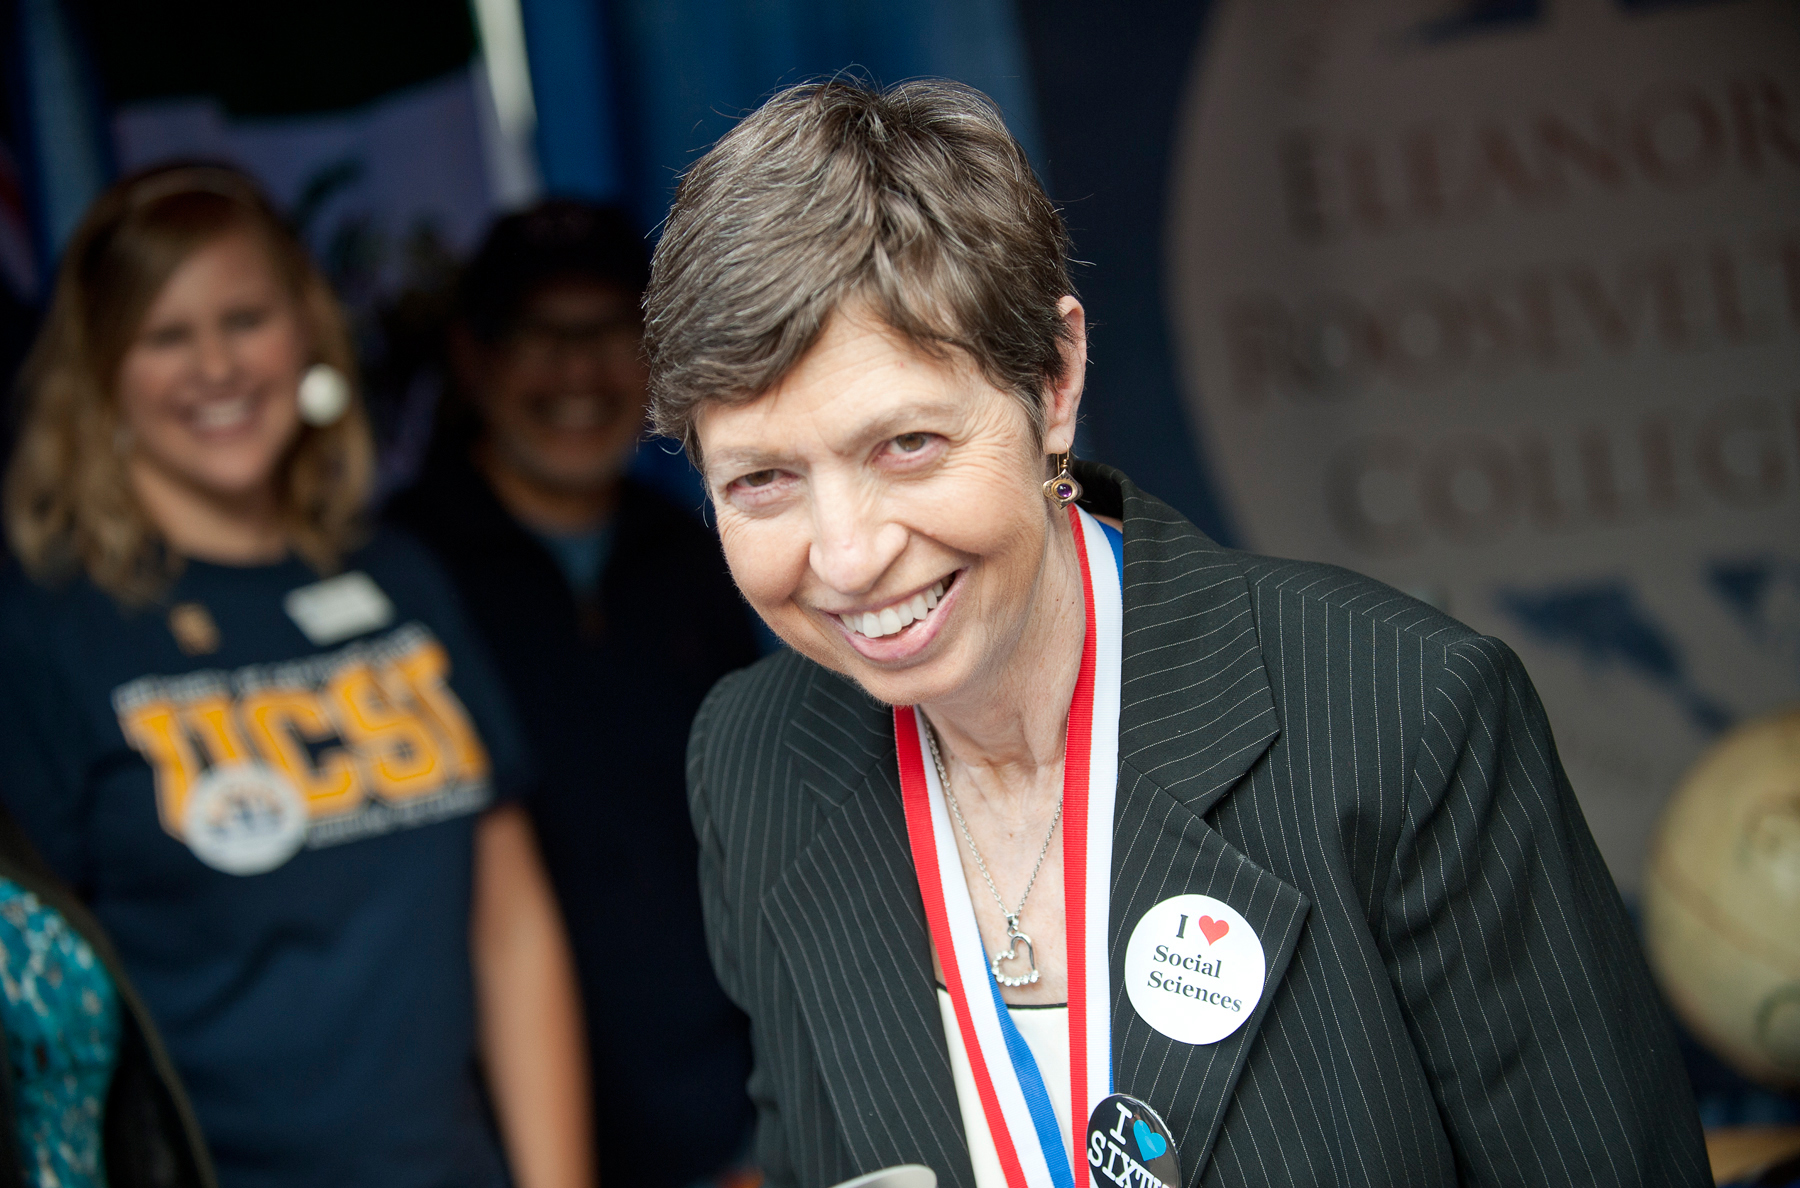 UCSD's First Female Chancellor Marye Anne Fox Dies At Age 73